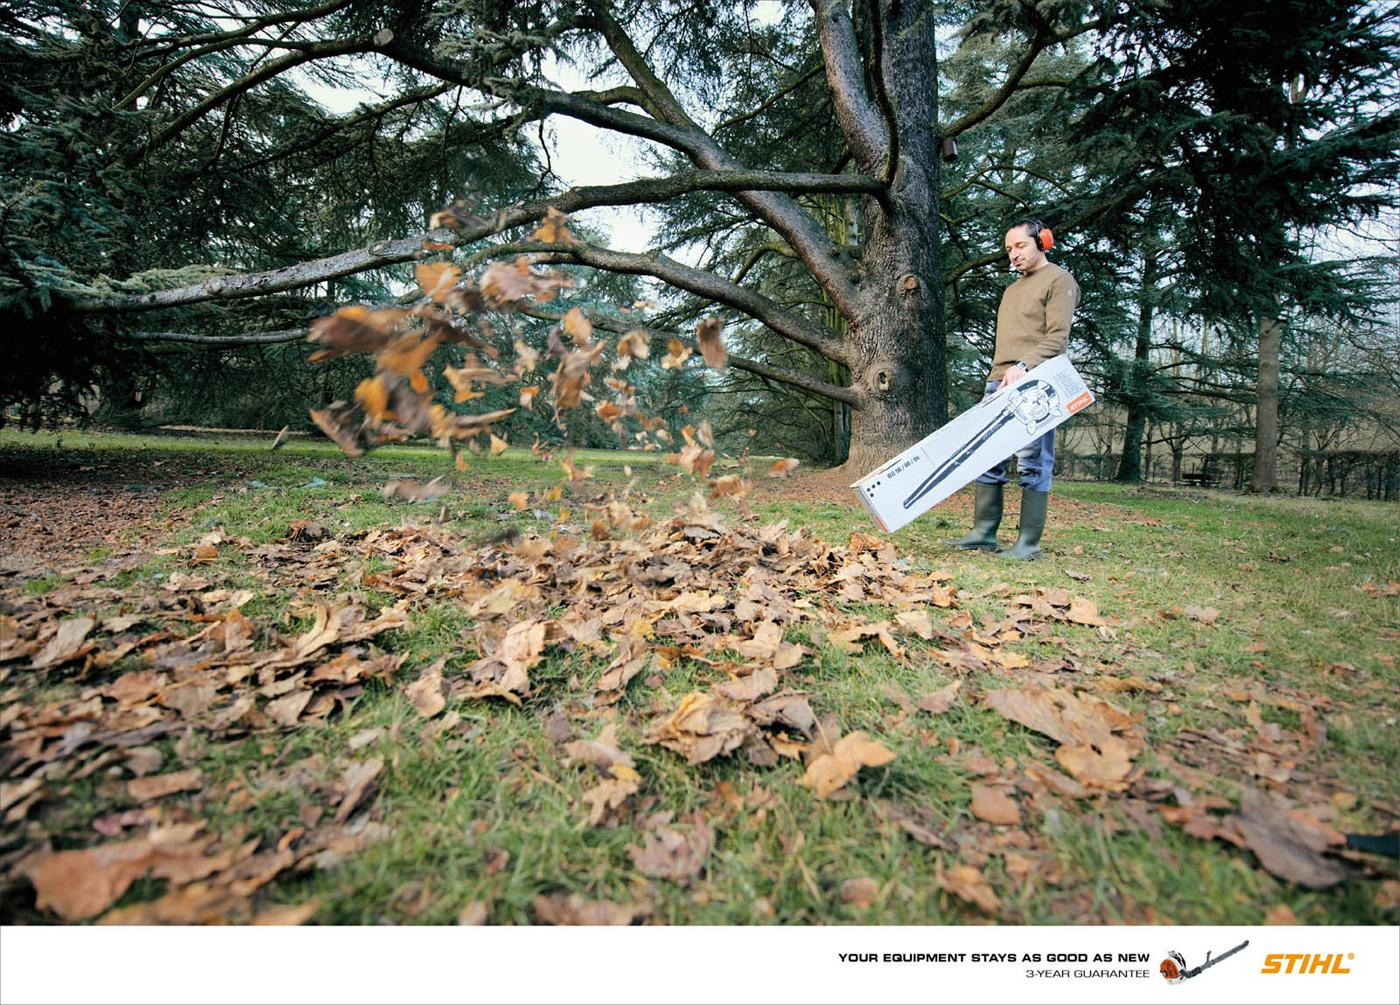 Stihl Print Ad -  As good as new, Blower